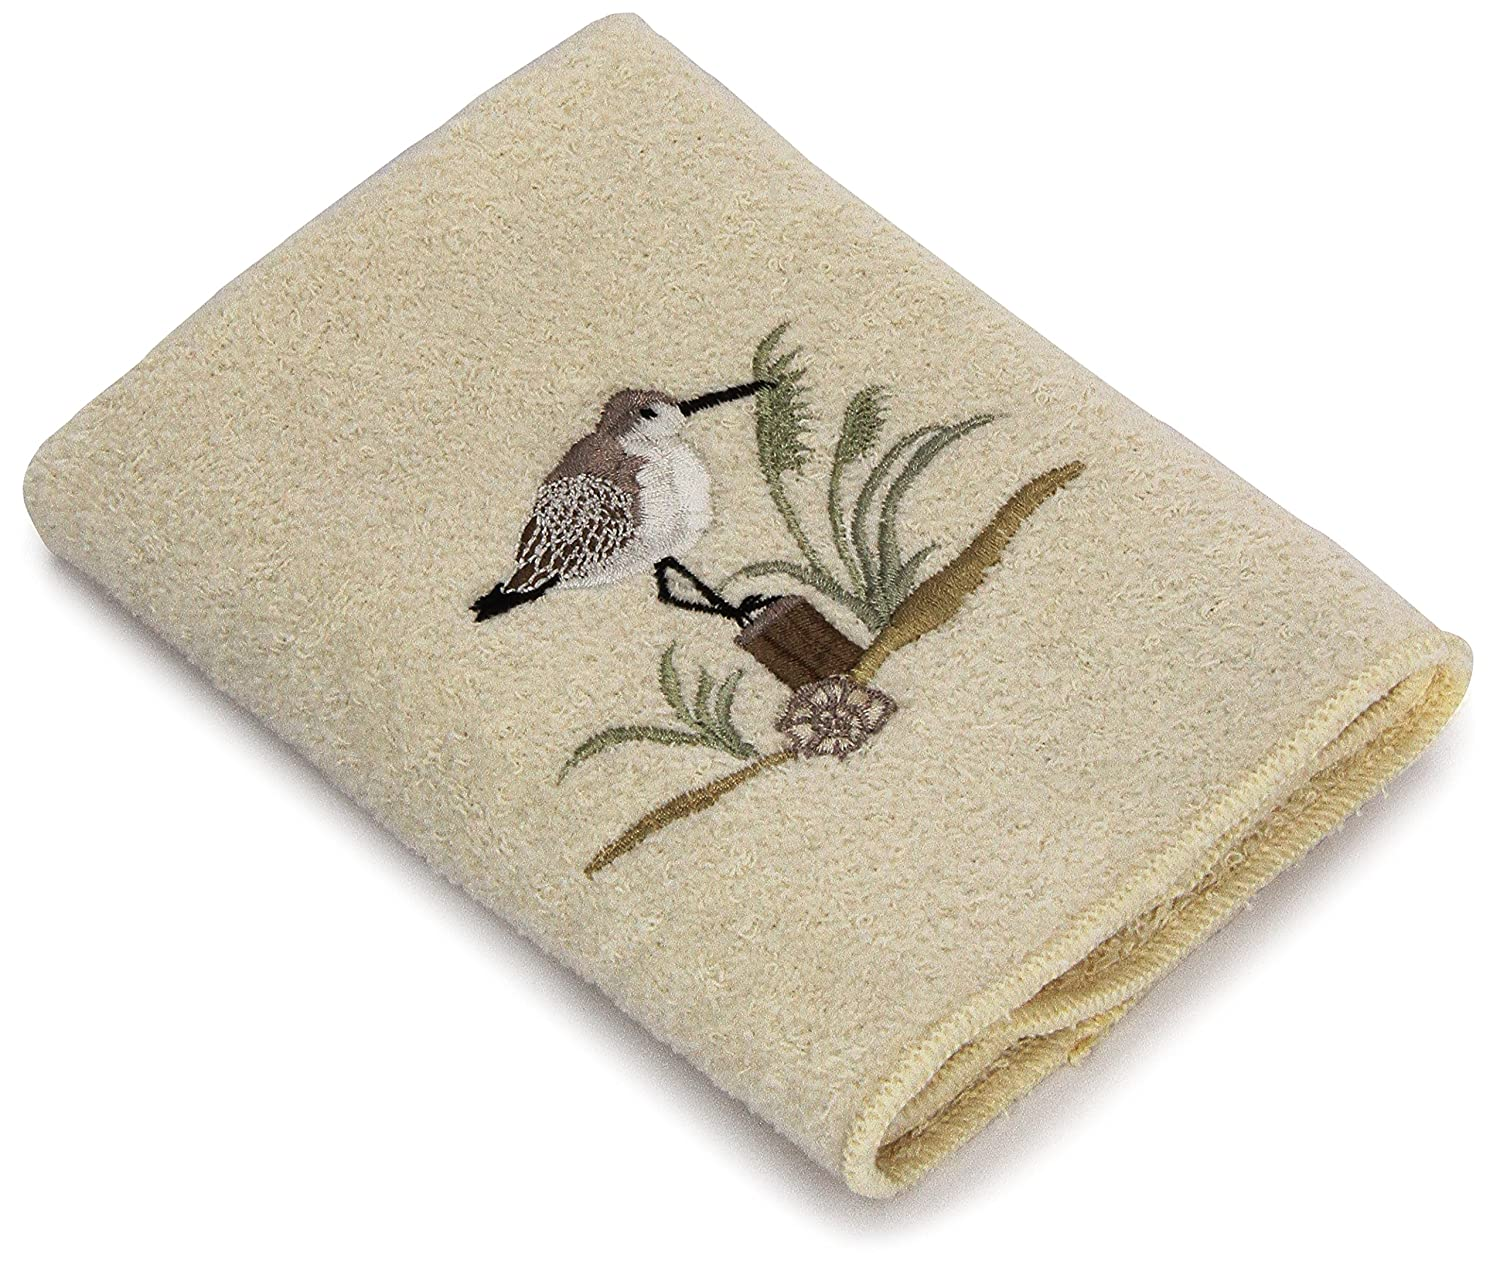 Avanti Sea Birds Bath Towel, Ivory Avanti Linens 35581IVR